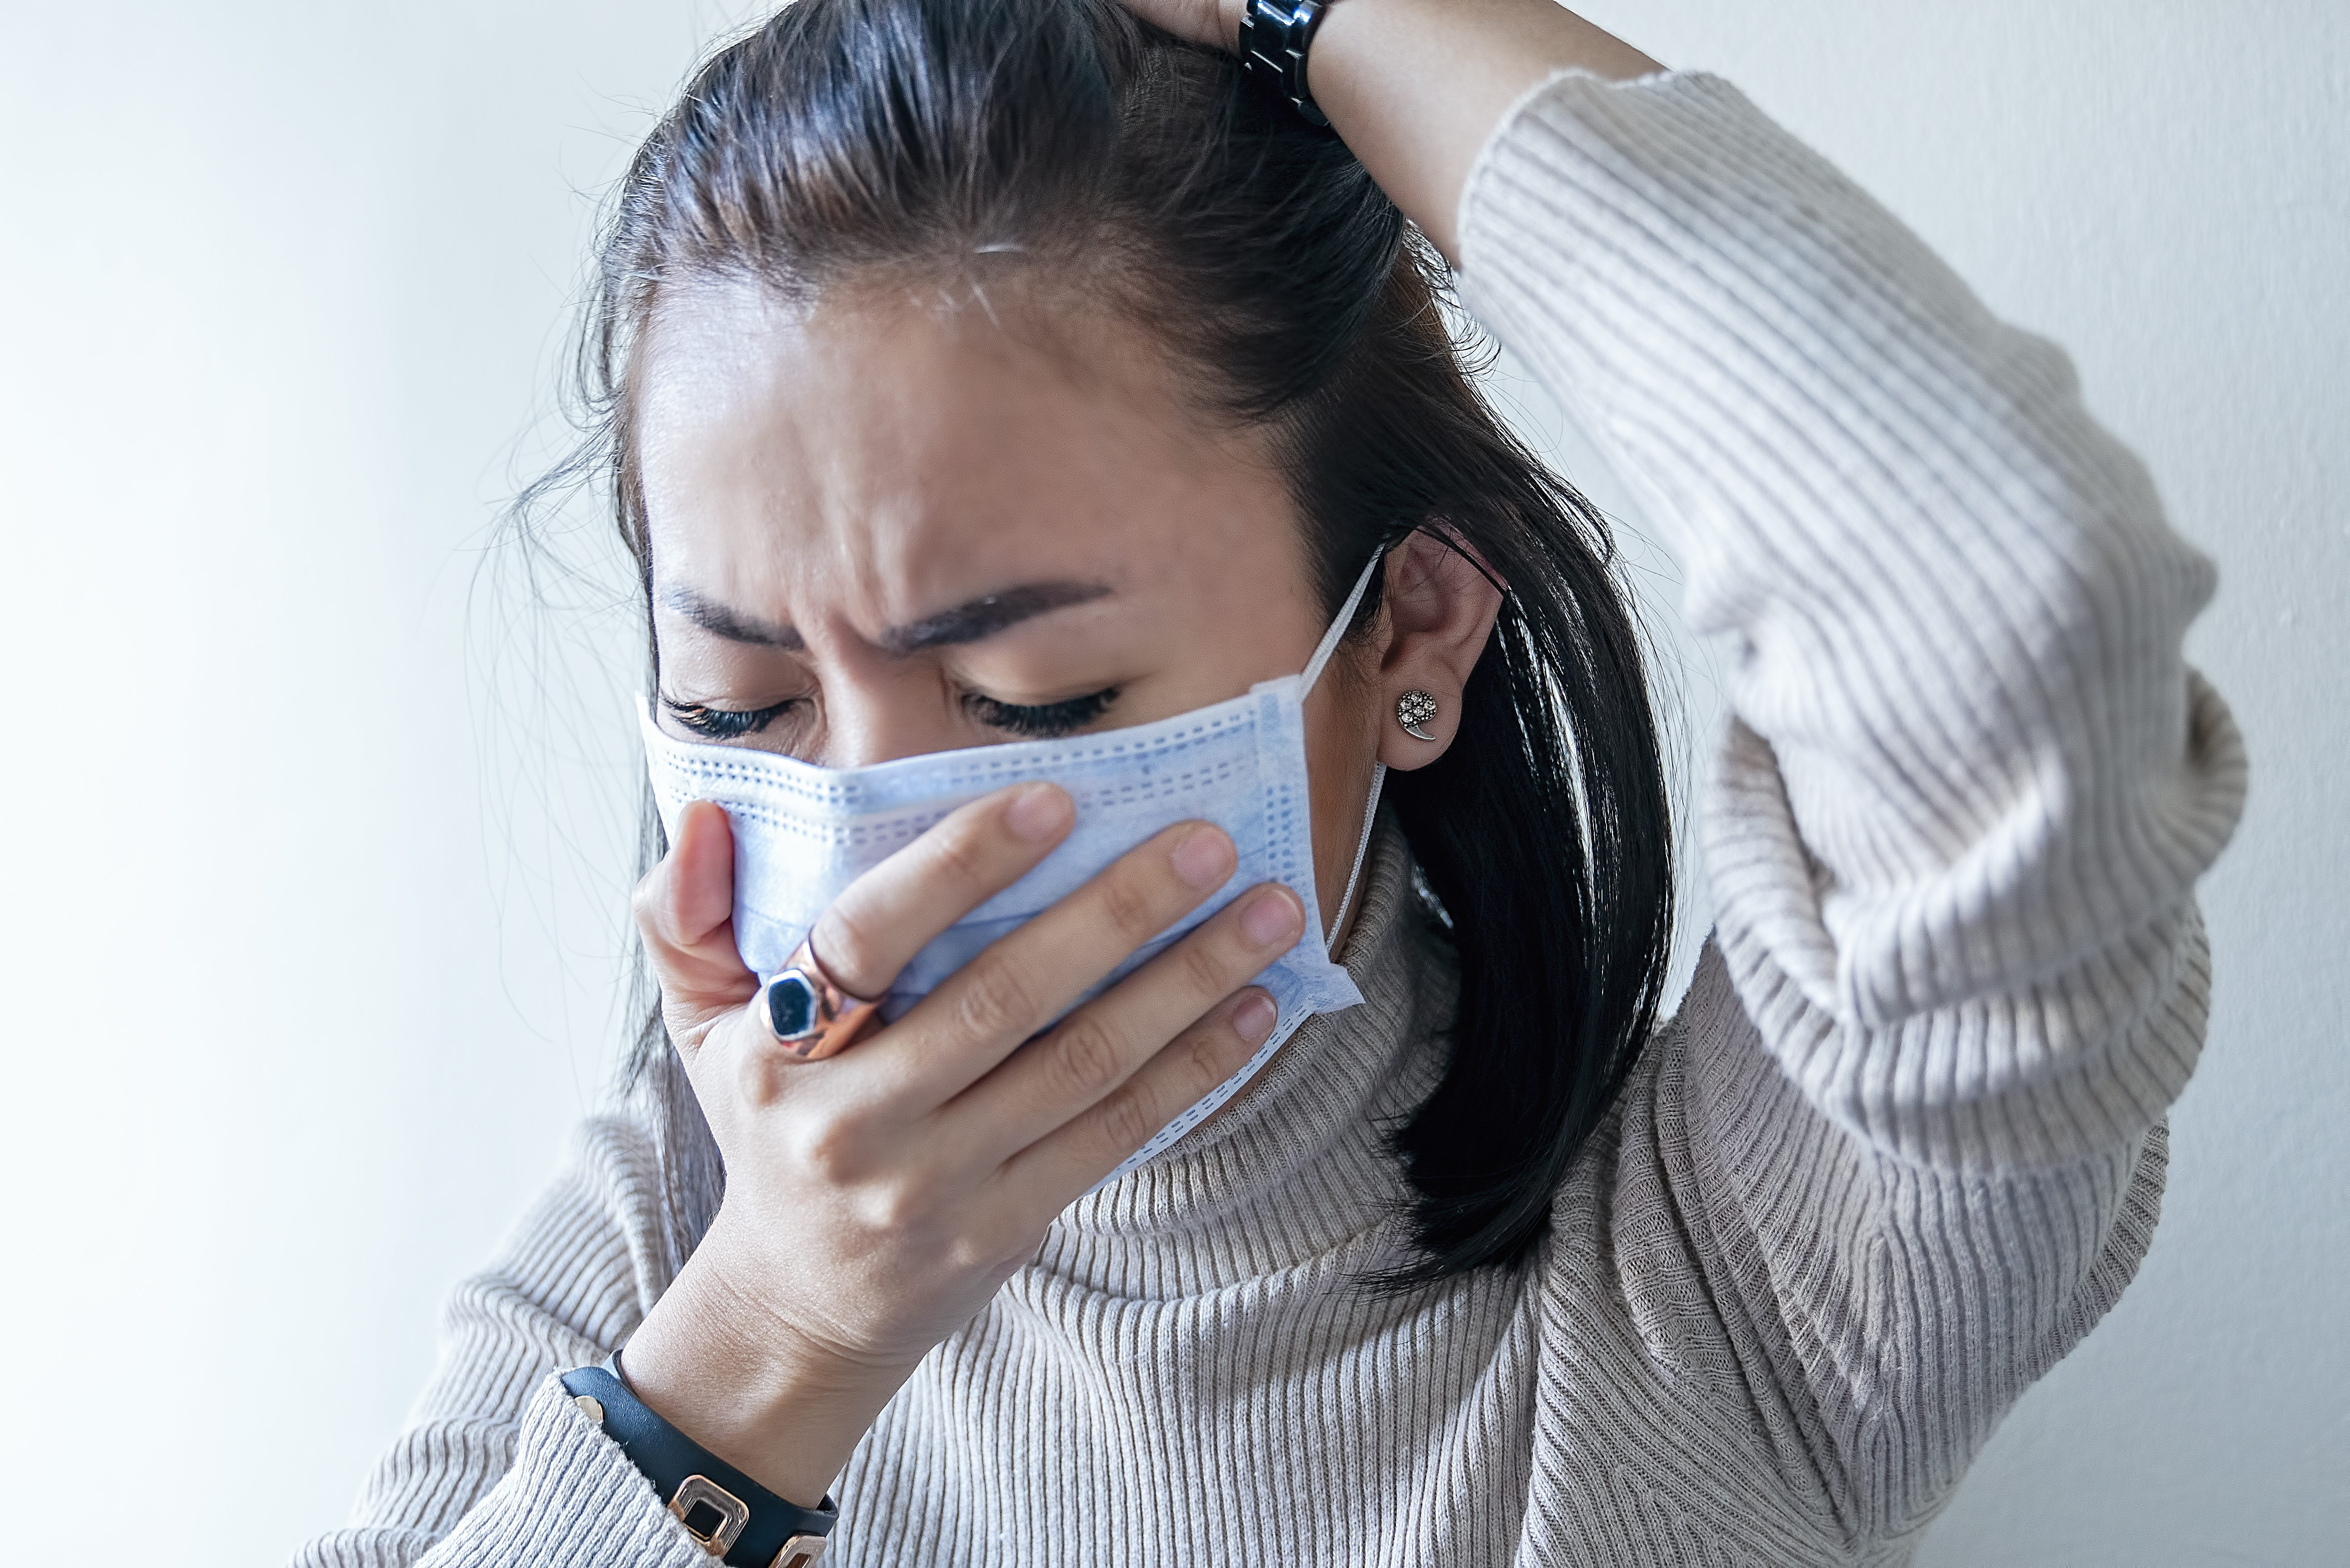 Deaths caused by the flu and related conditions differ year on year